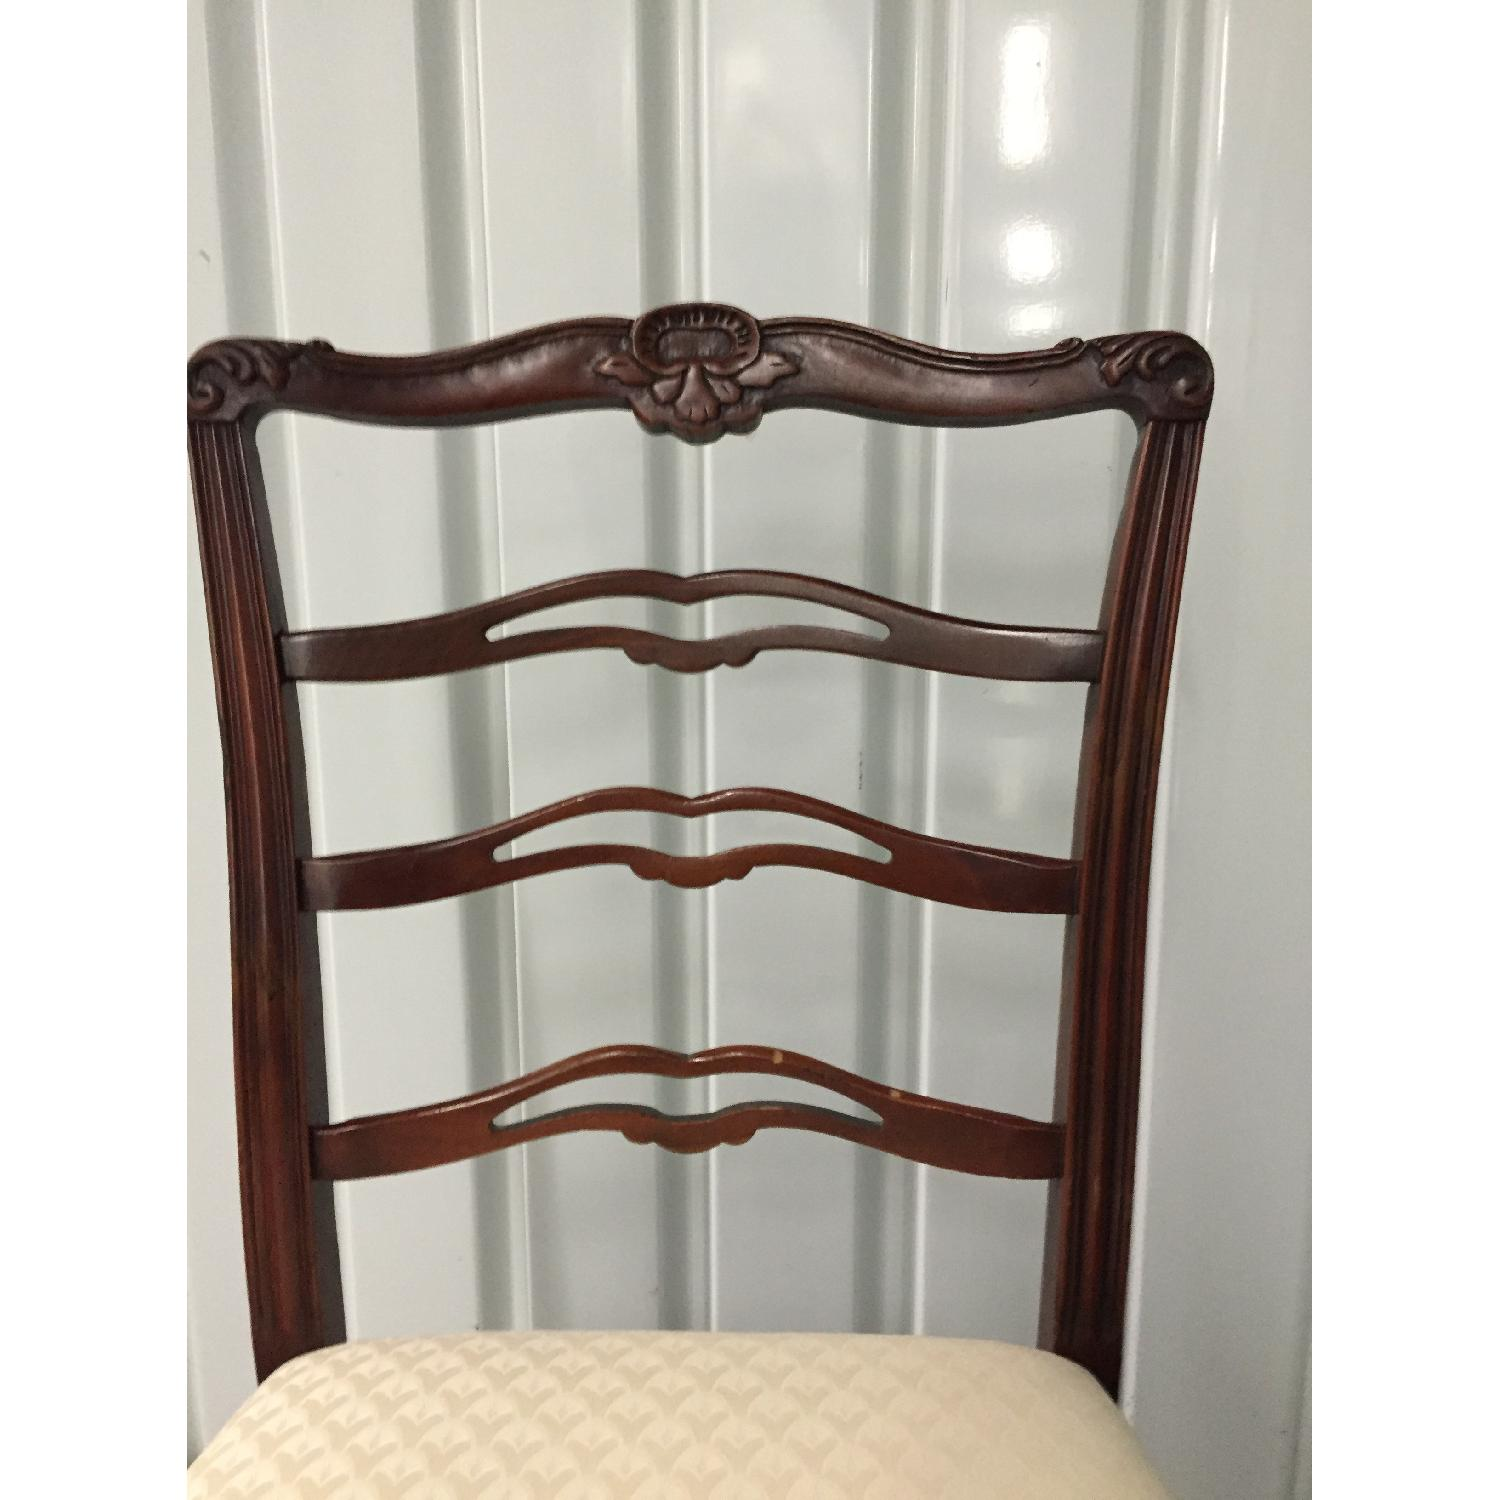 Antique Dining Room Chairs w/ Cherry Wood Frames & Custom Seat Upholstery - Set of 5 - image-3